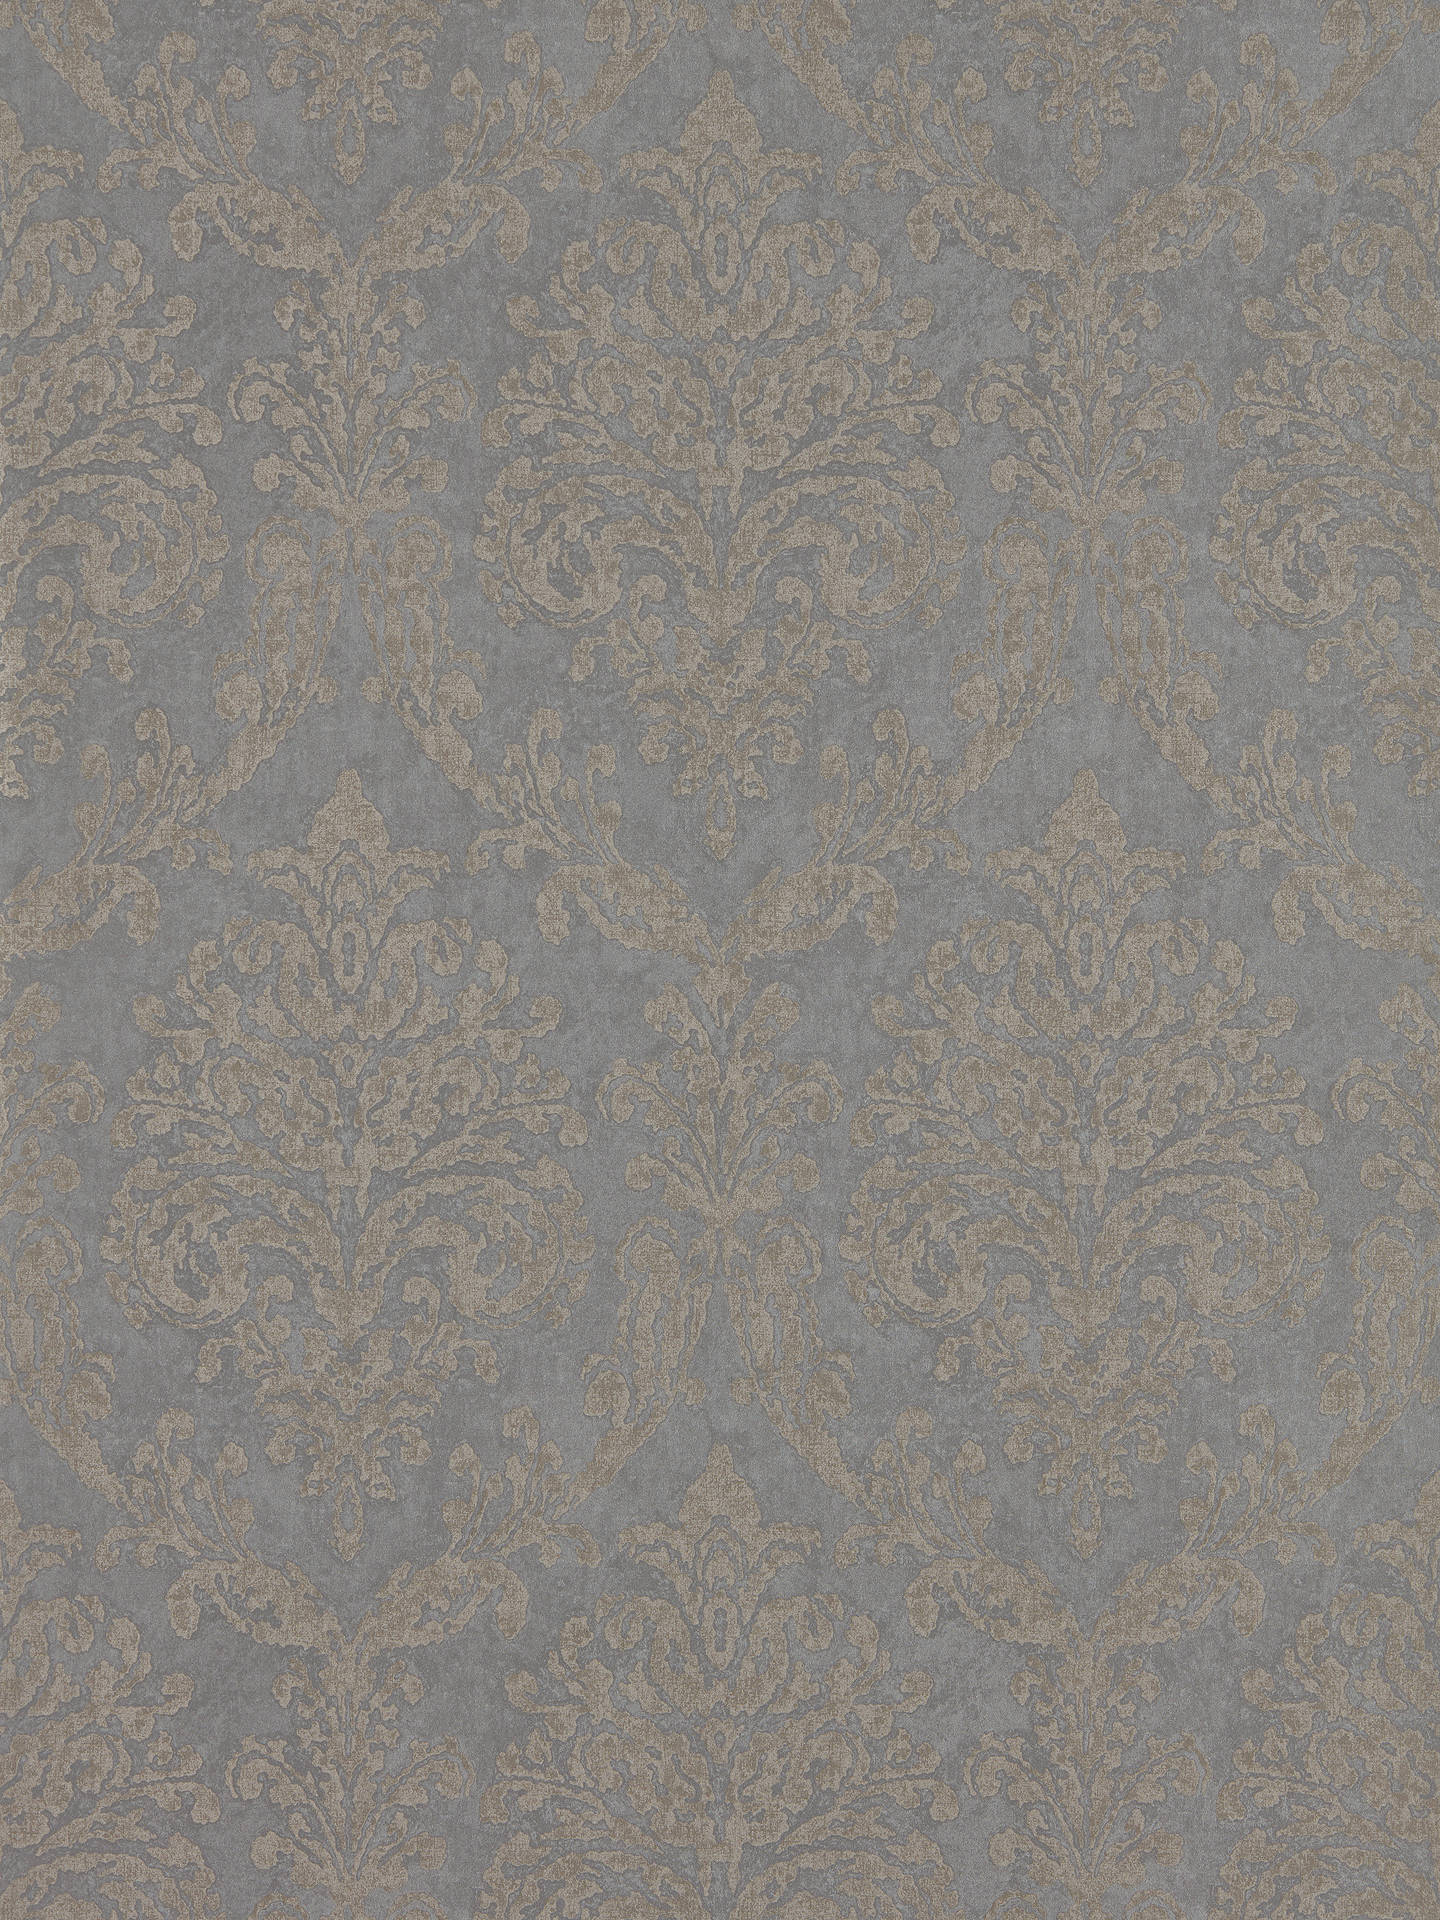 Buy Sanderson Waterperry Riverside Damask Wallpaper, Mole / Copper DWAP216290 Online at johnlewis.com